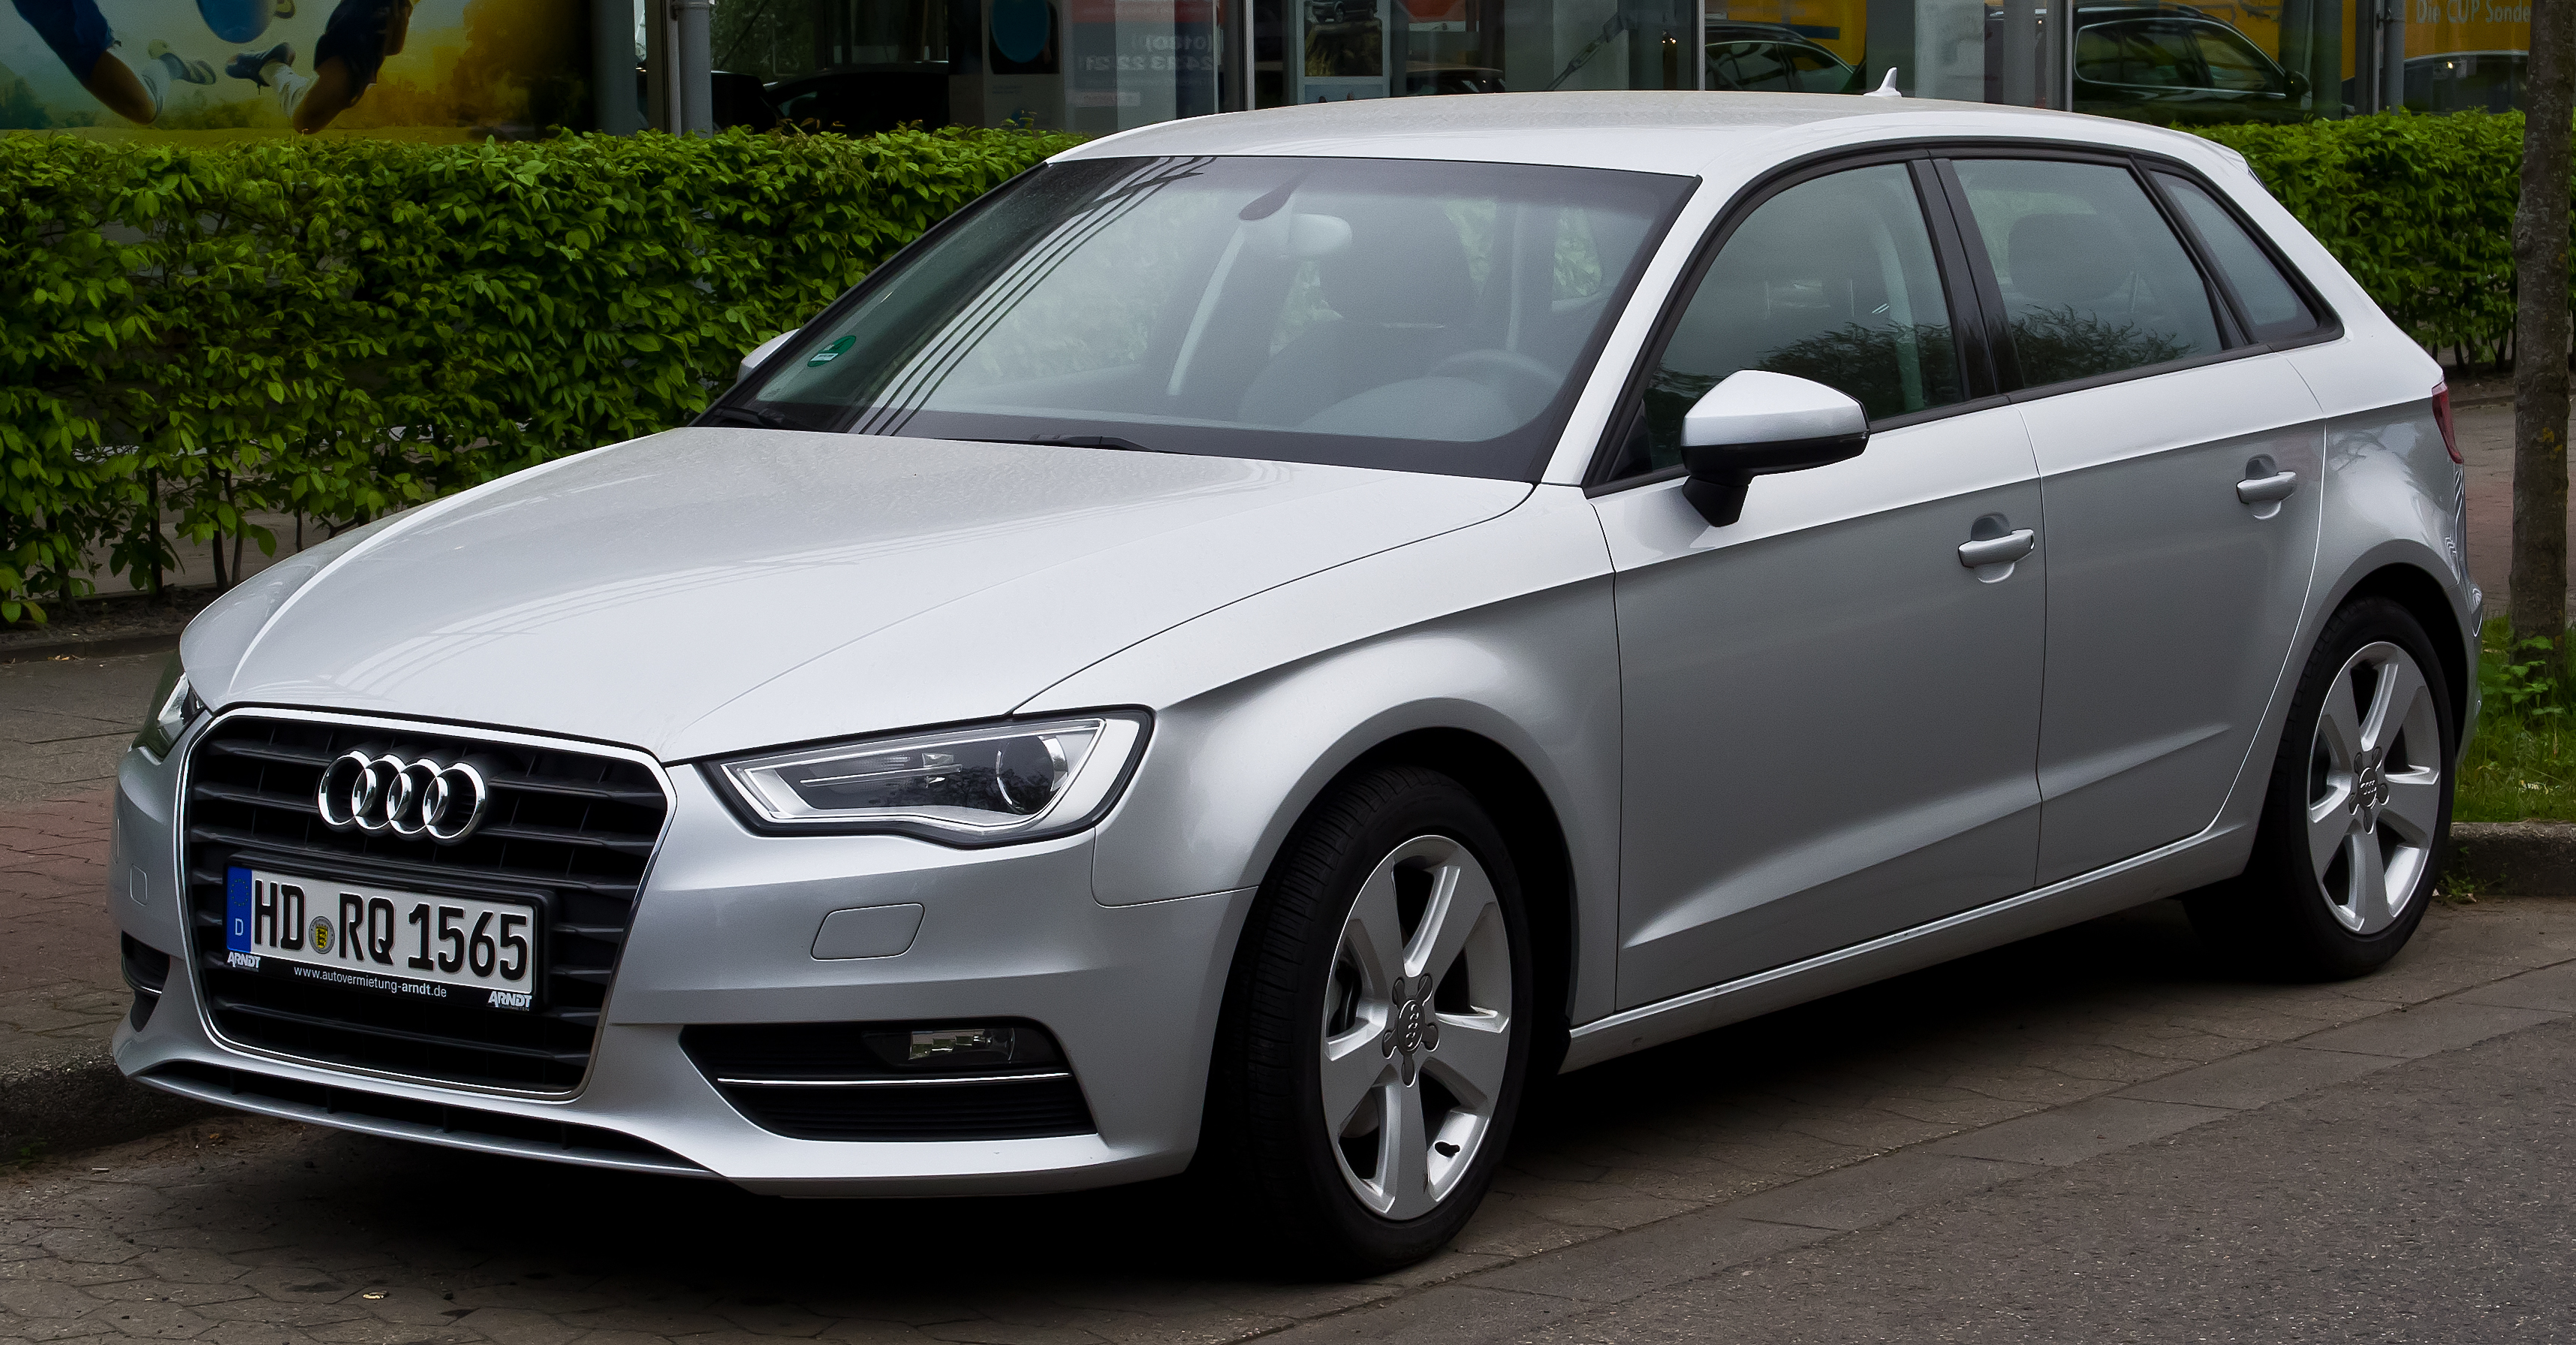 audi a3 (8v) 2014 pictures #4